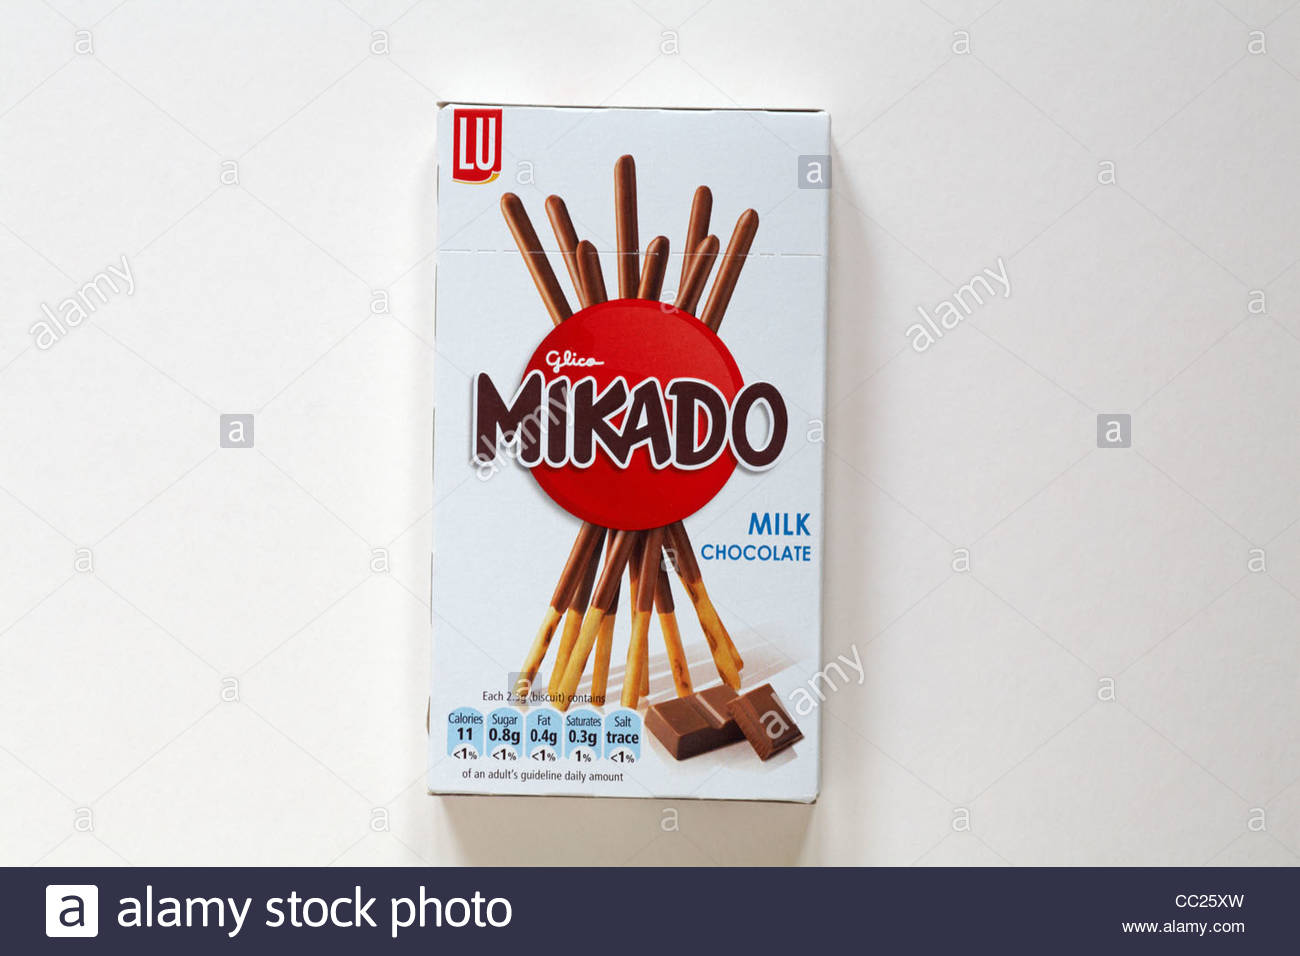 Box of unopened Lu Glico Mikado milk chocolate biscuits isolated 1300x956